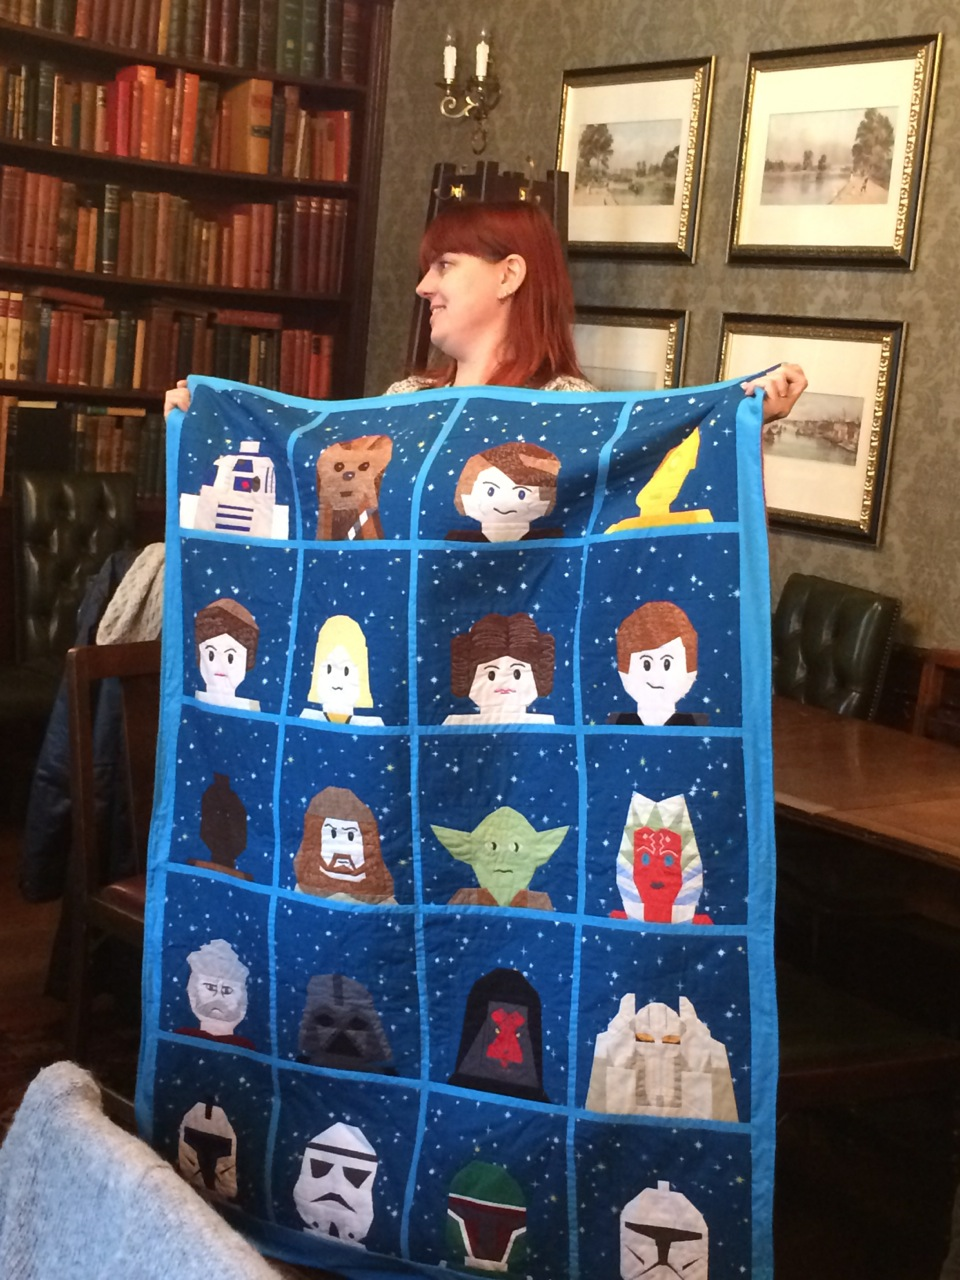 Apparently all of the faces are hand-pieced, and she made up two of them when unable to find a pattern. OMG! The backing ingeniously made use of a Lego Star Wars fleece blanket purchased from Legoland.